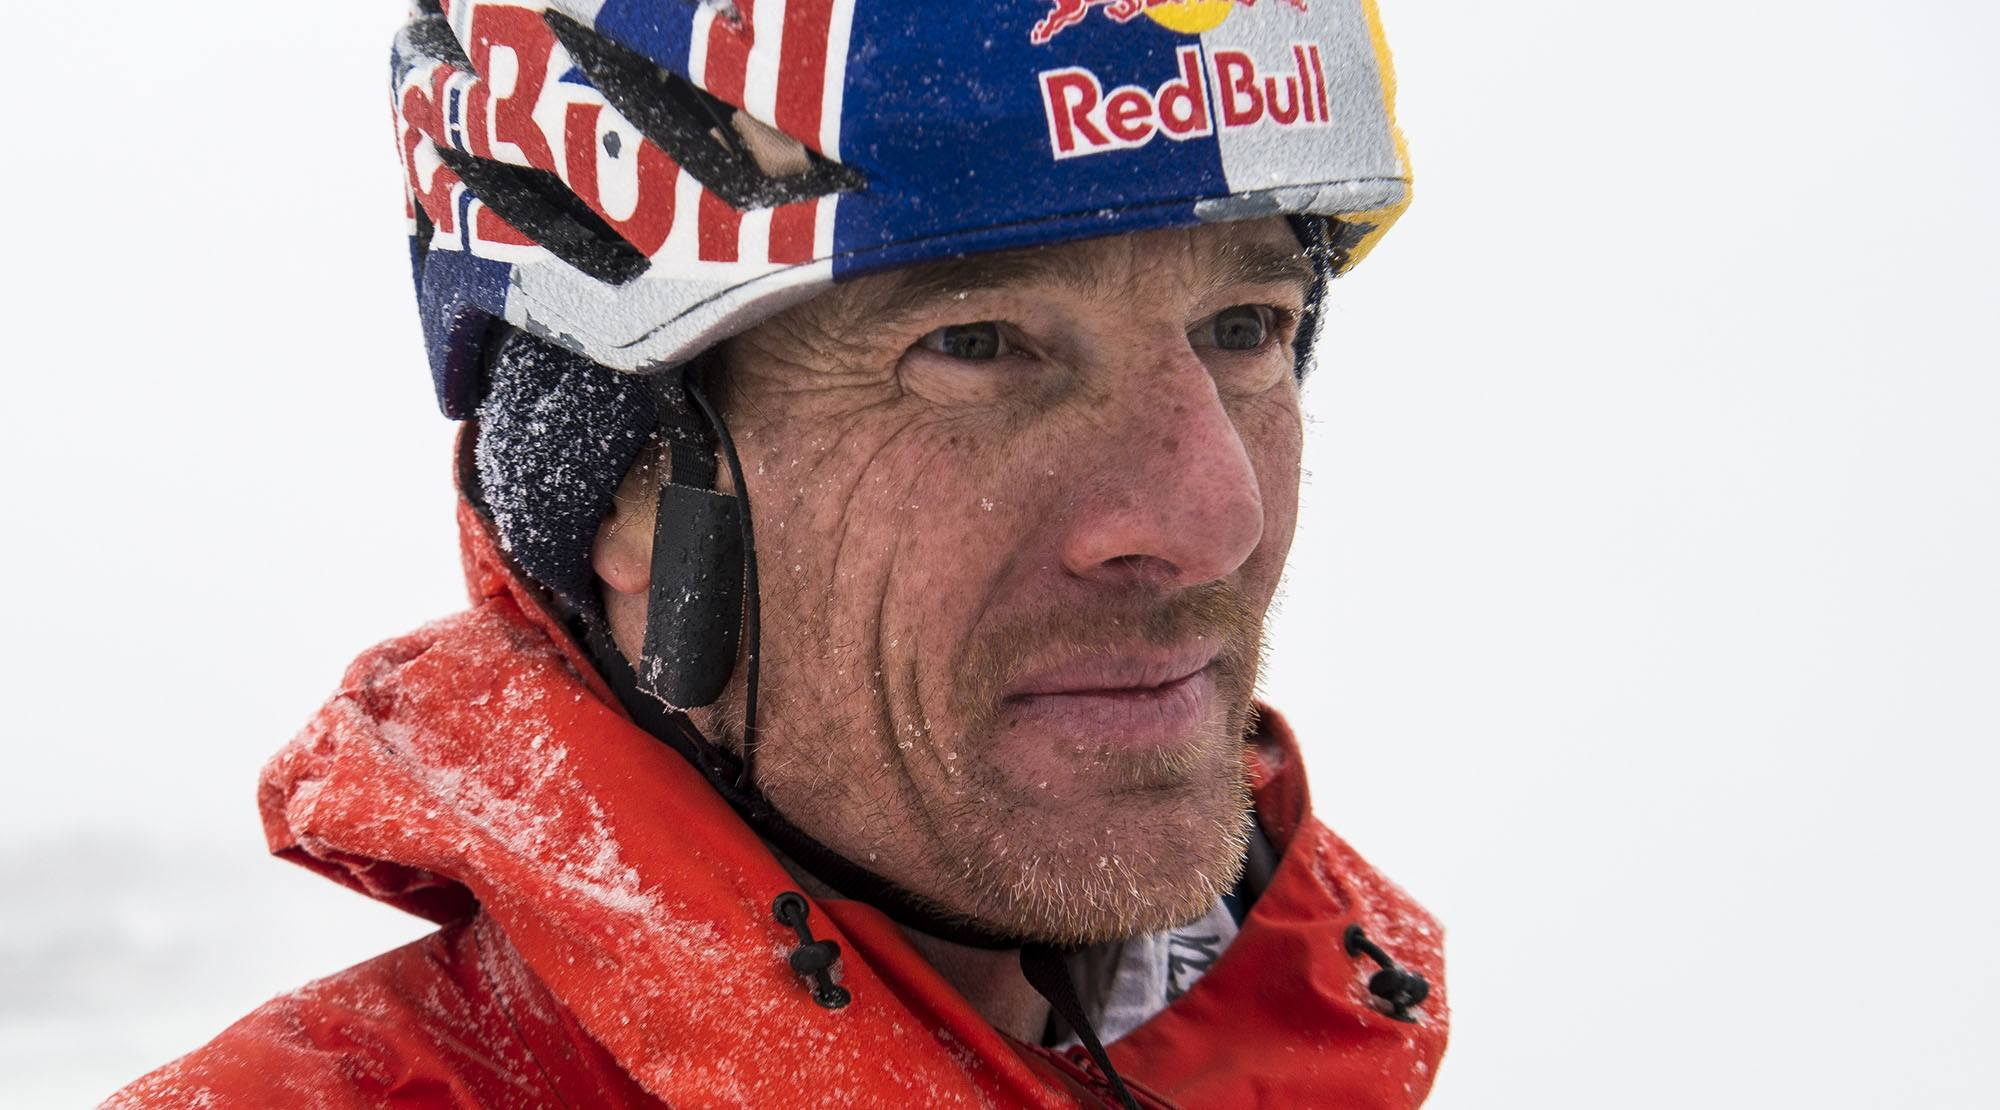 Canadian adventurer Will Gadd coming to Vancouver this Saturday